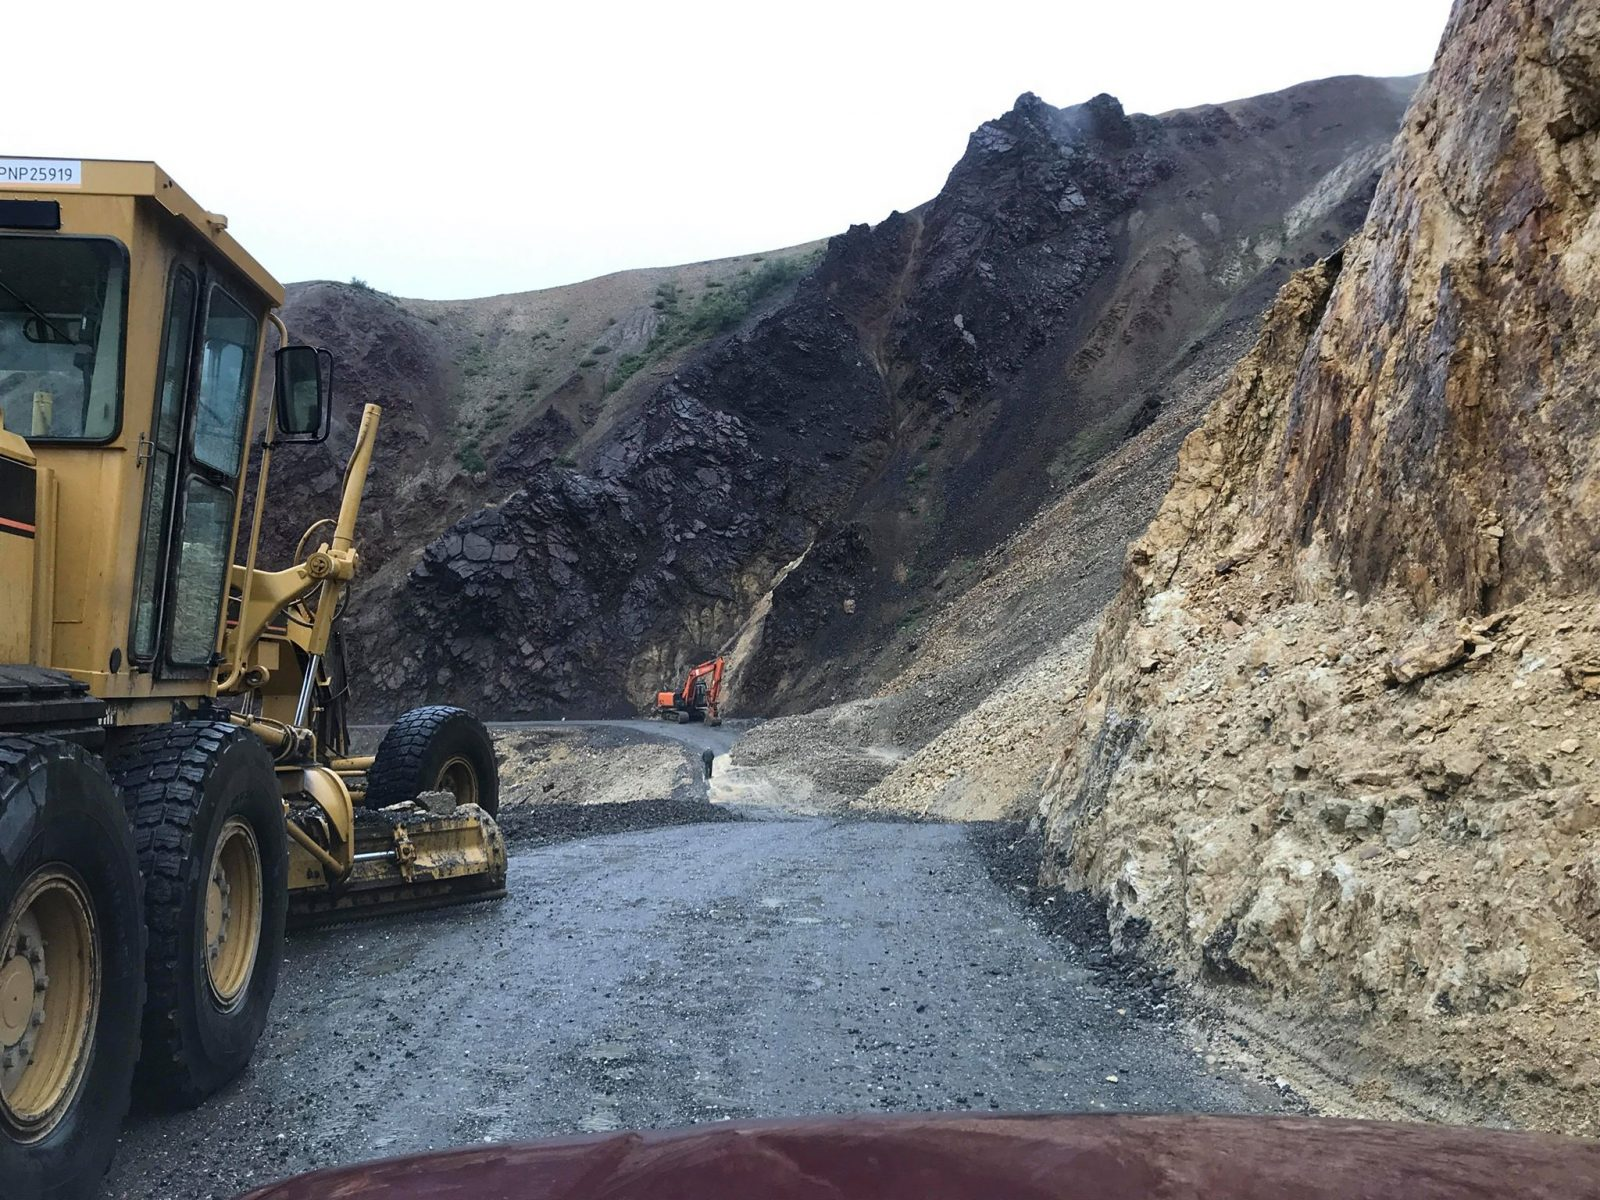 Repairing the one road through Denali National Park after a rock slide in 2019.